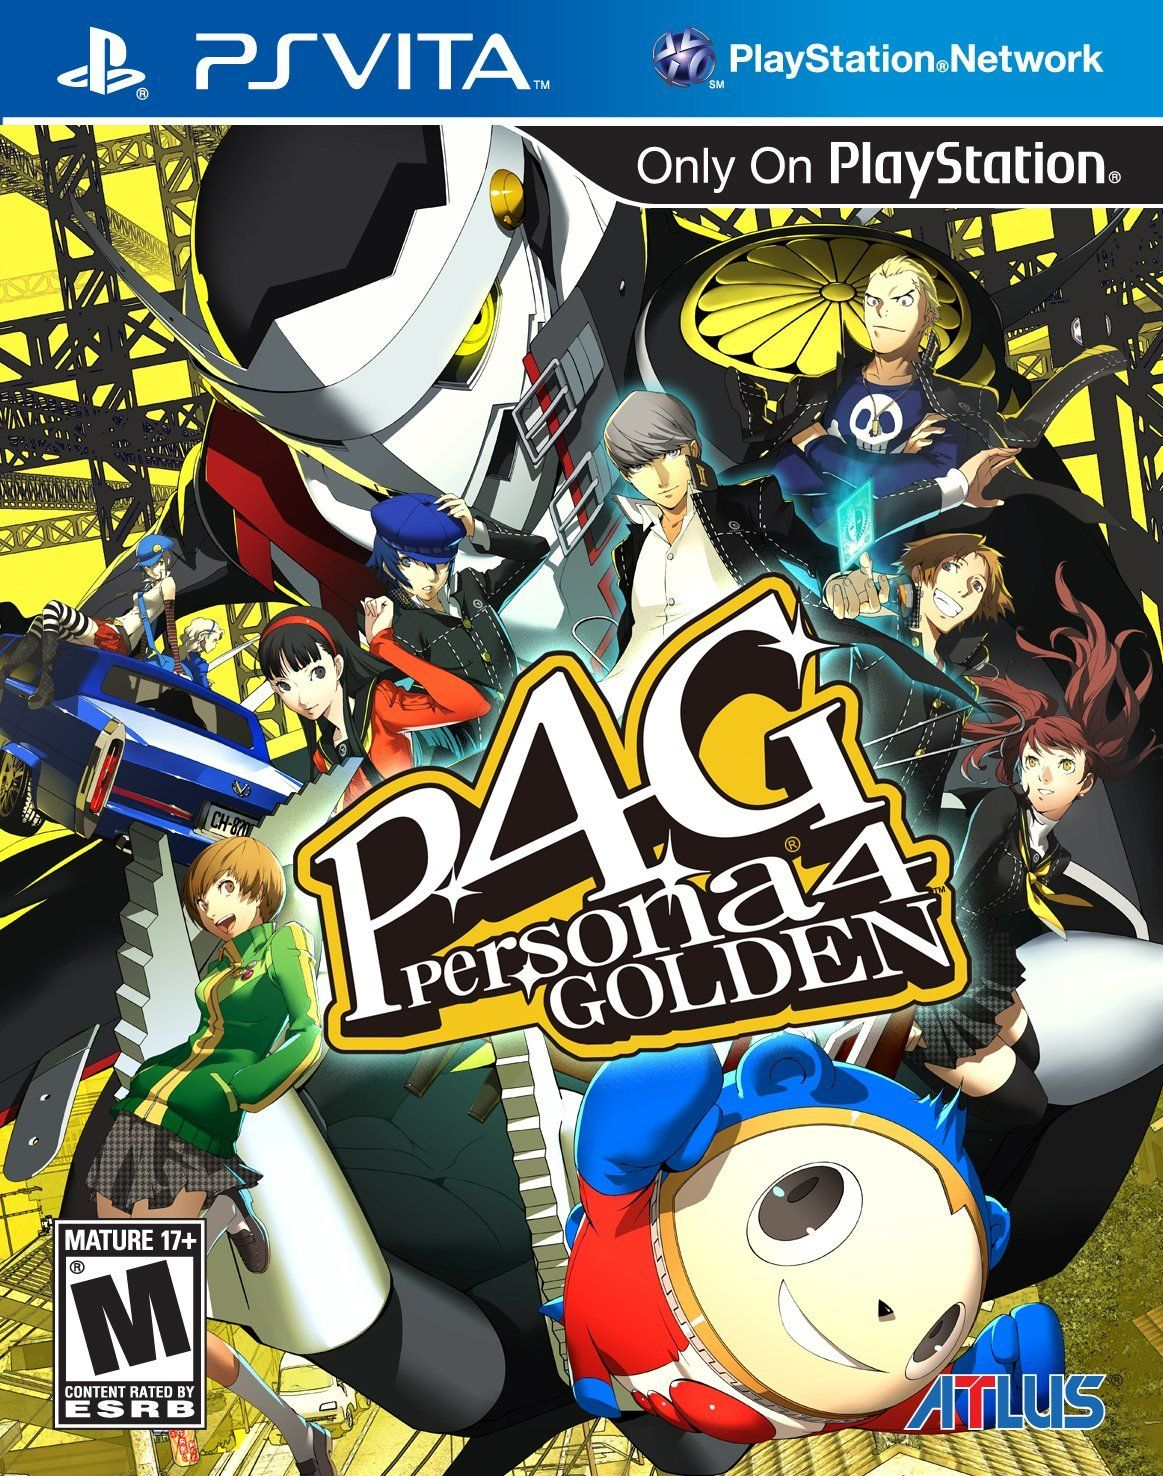 Persona 4 Golden | P4G | Games Enjoyed | Ps vita games, Ps4